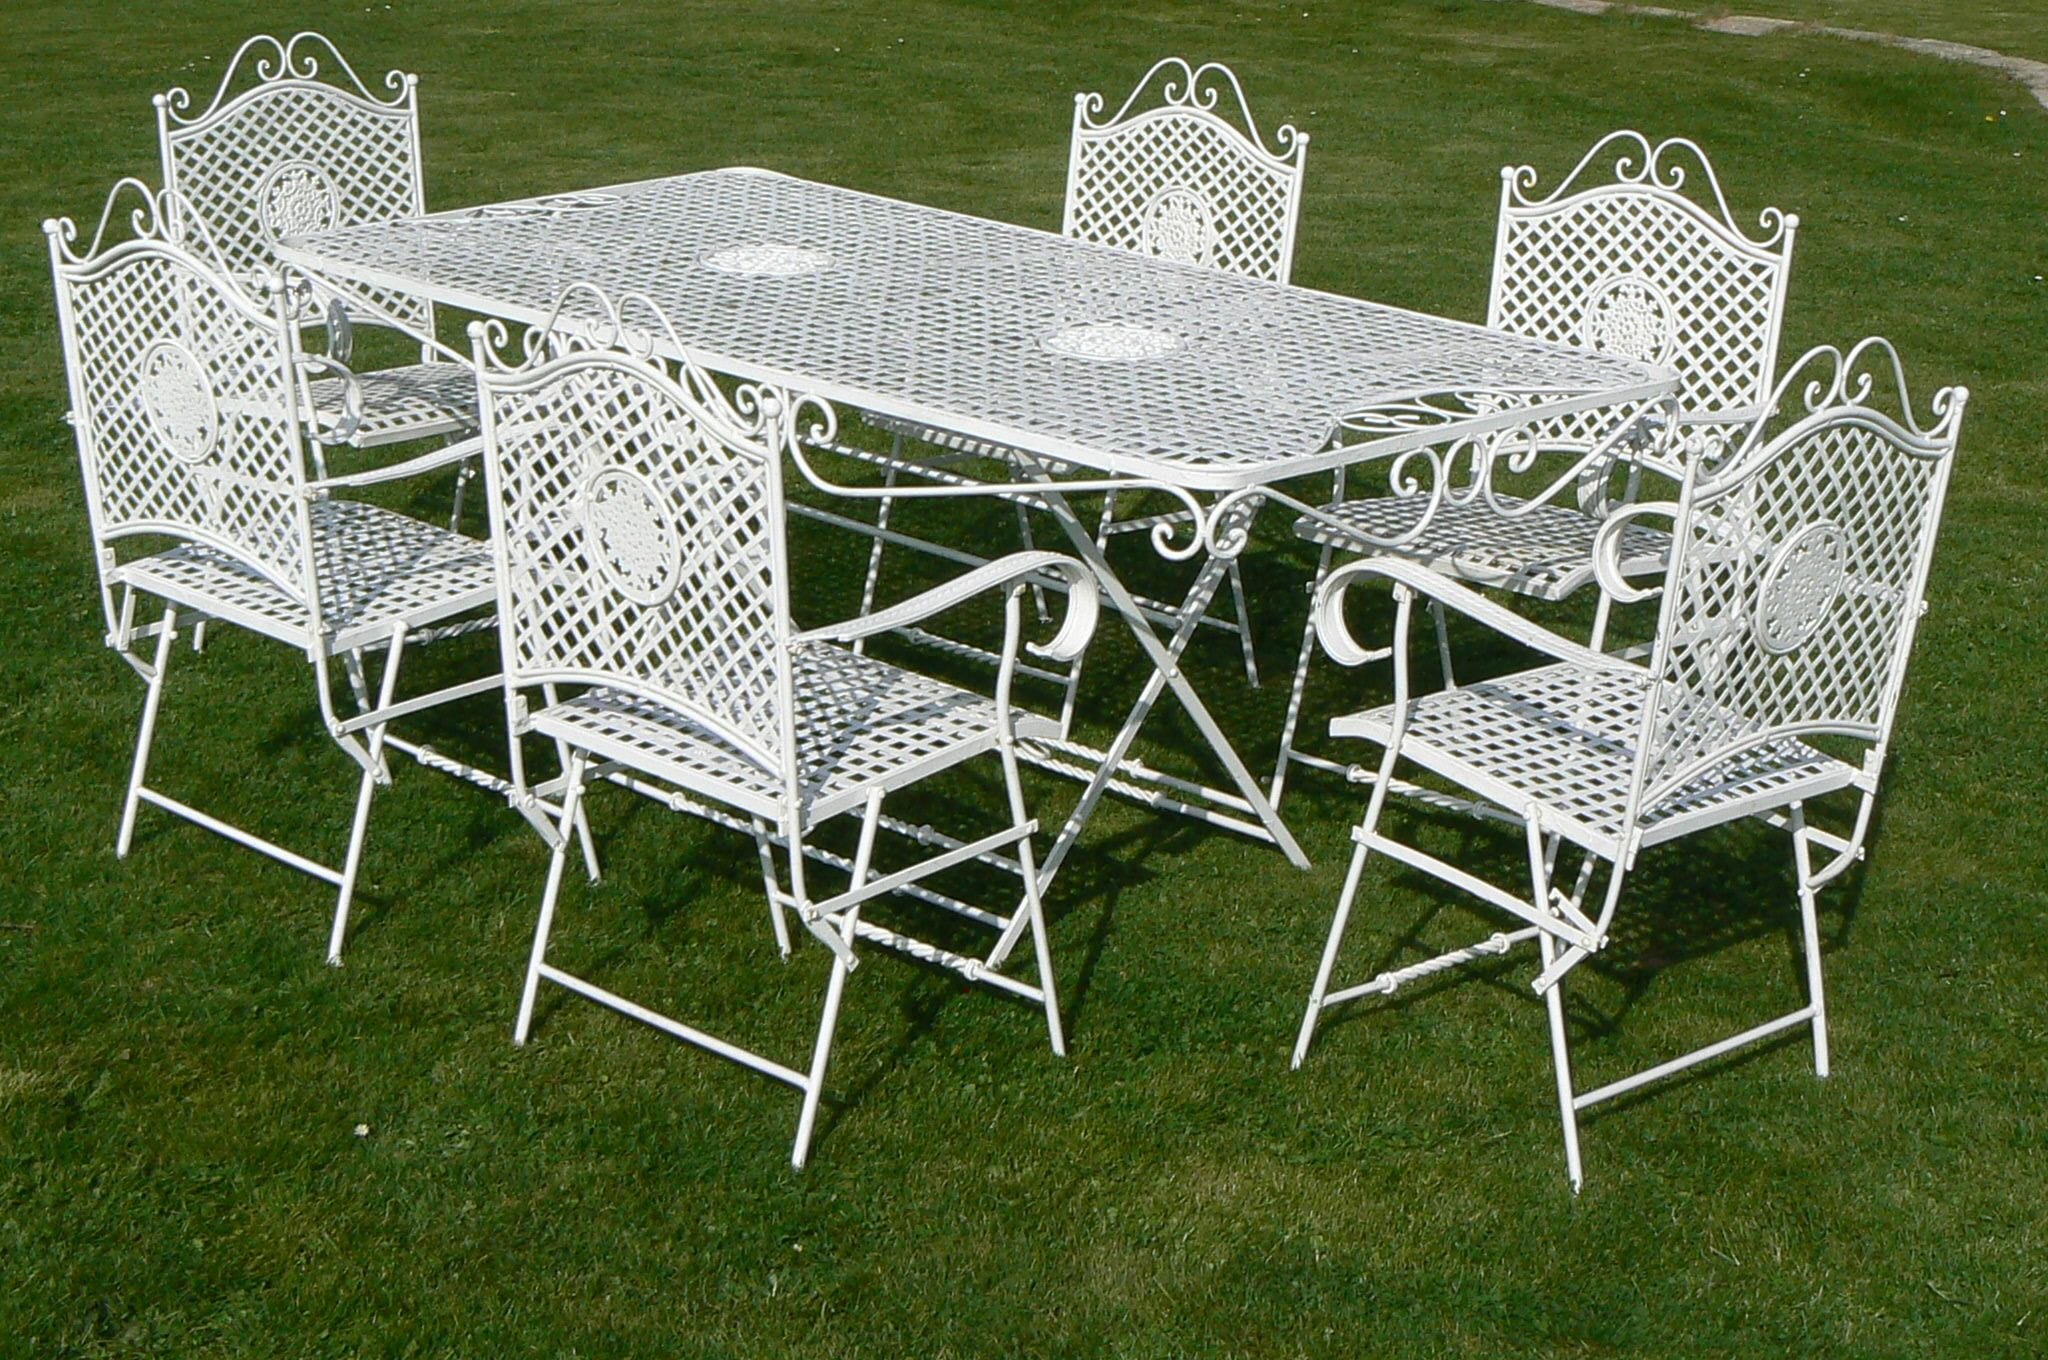 wrought iron wicker outdoor furniture white. Vintage Iron Garden Furniture Backgrounds HD Free Wallpaper Wrought Wicker Outdoor White C